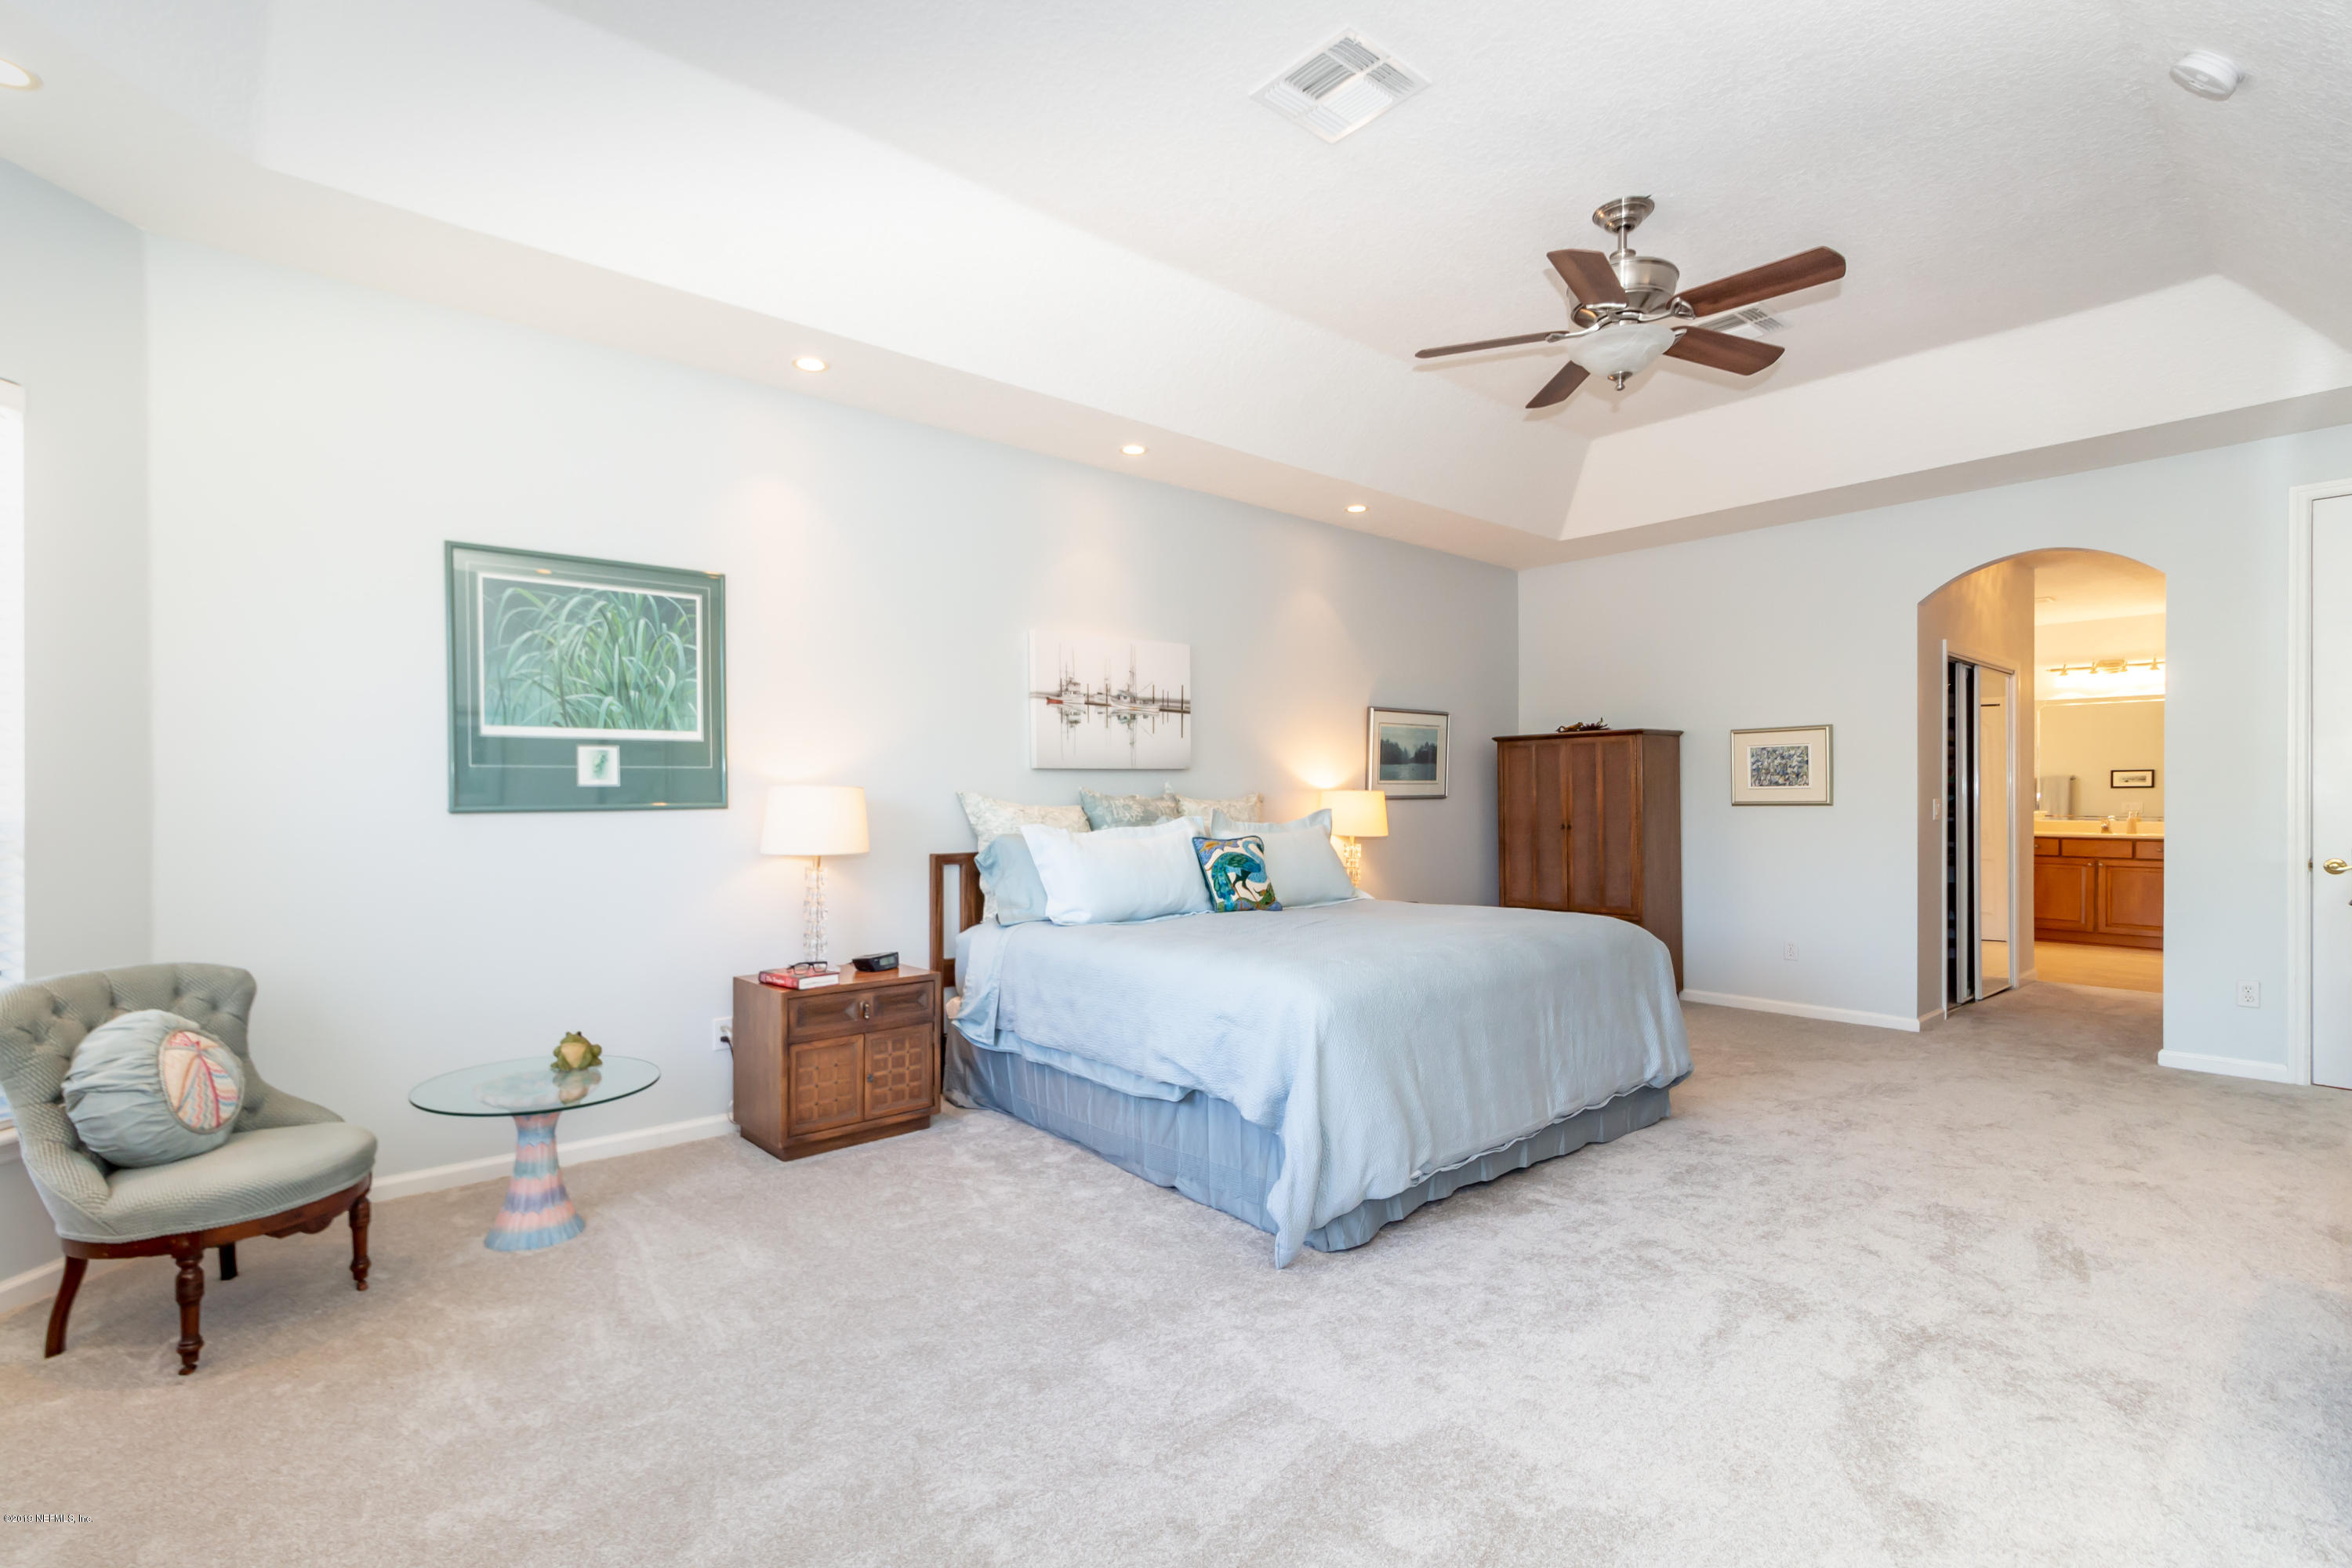 1256 PARADISE POND, ST AUGUSTINE, FLORIDA 32092, 5 Bedrooms Bedrooms, ,4 BathroomsBathrooms,Residential - single family,For sale,PARADISE POND,978180